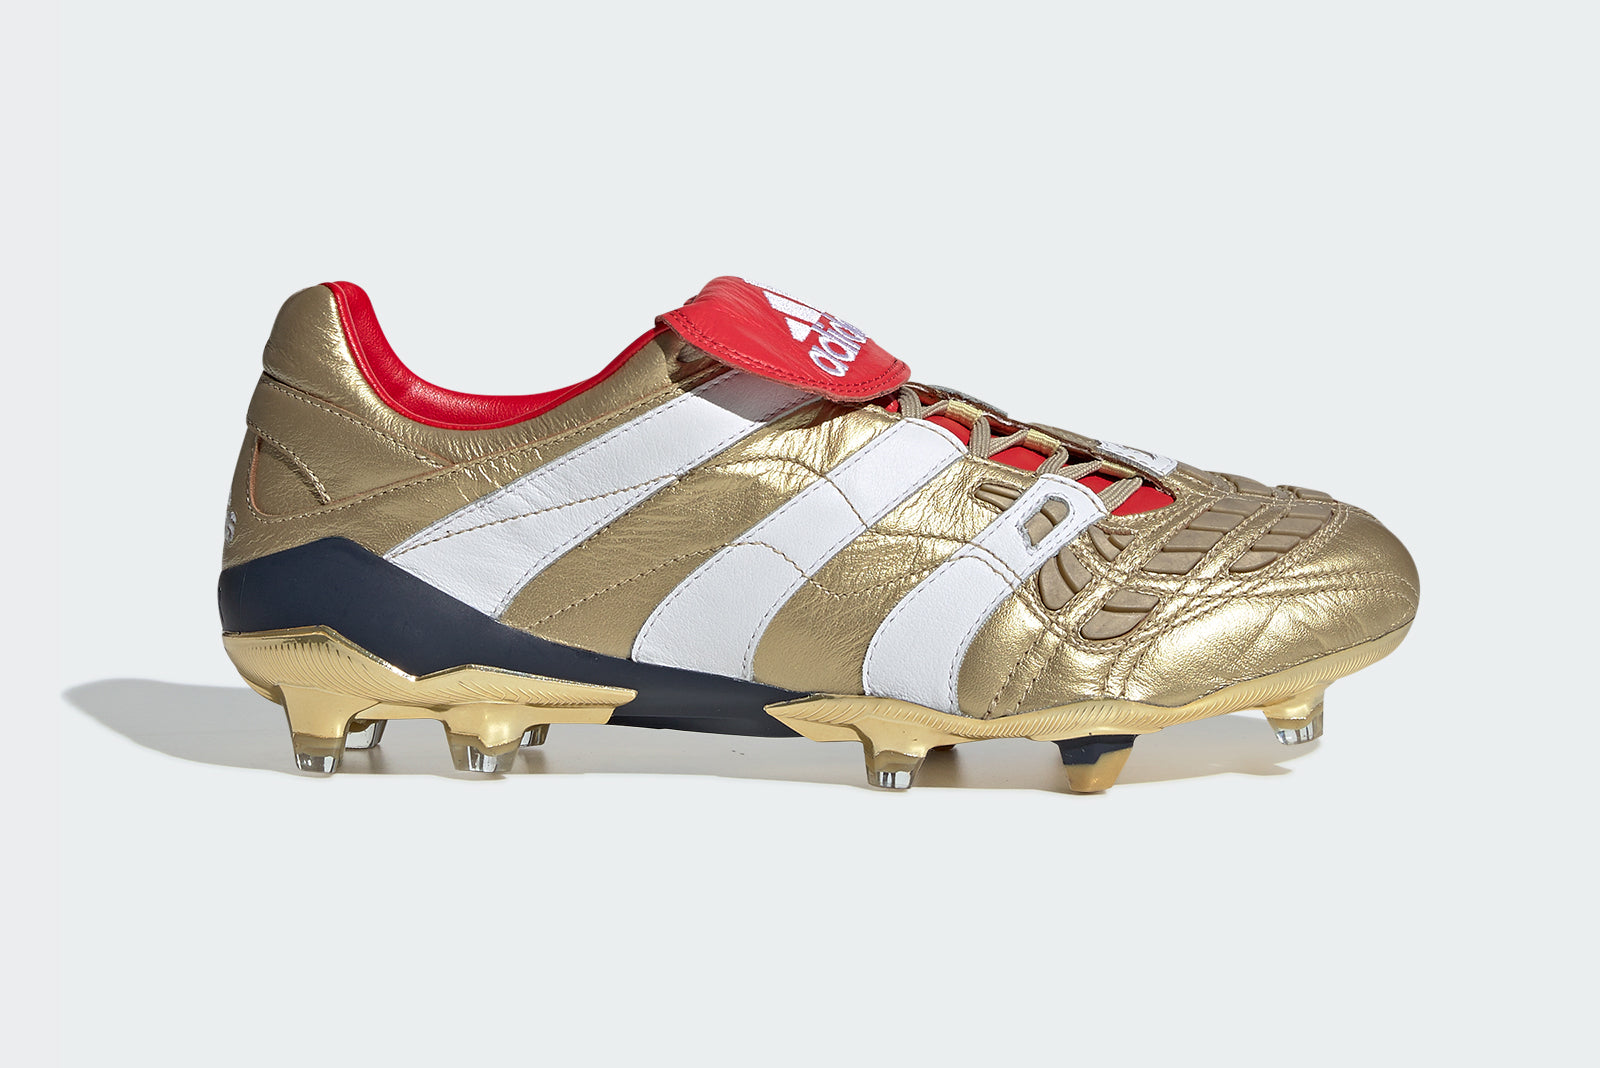 6cd68c1aa809 adidas Predator Accelerator FG ZZ Football Boots F37076 Gold Met Gold  Met Core Black Price  £299.00. Launch  Thursday 7th of March